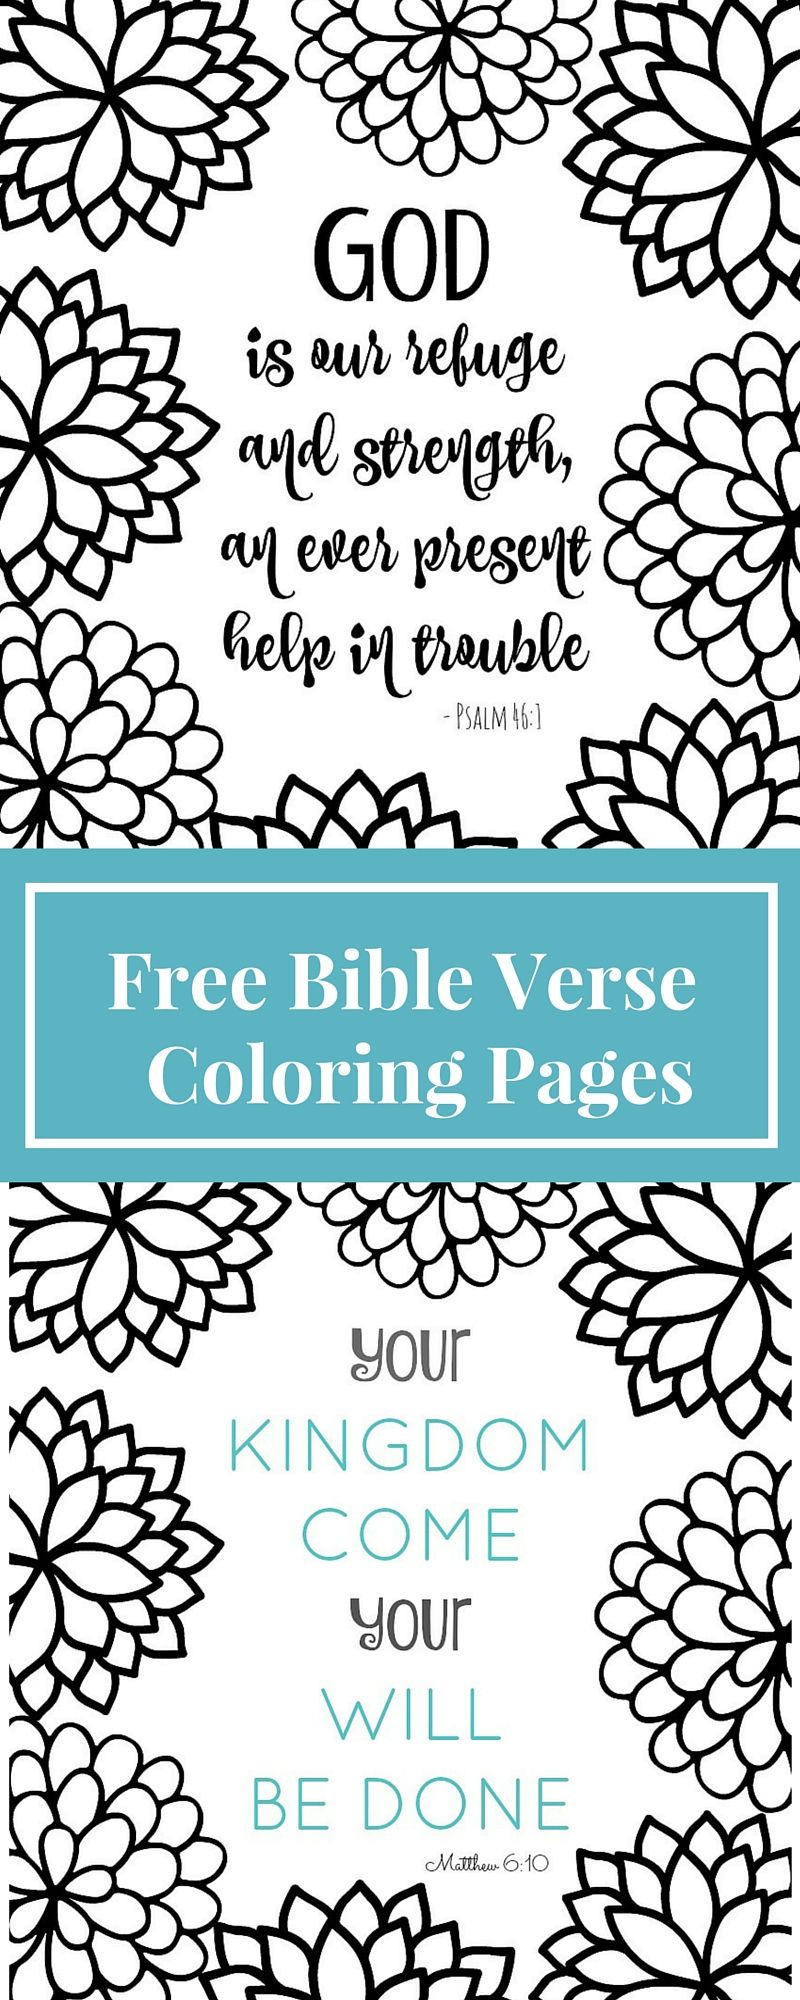 free printable bible verse coloring pages with bursting blossoms adult coloring verses and